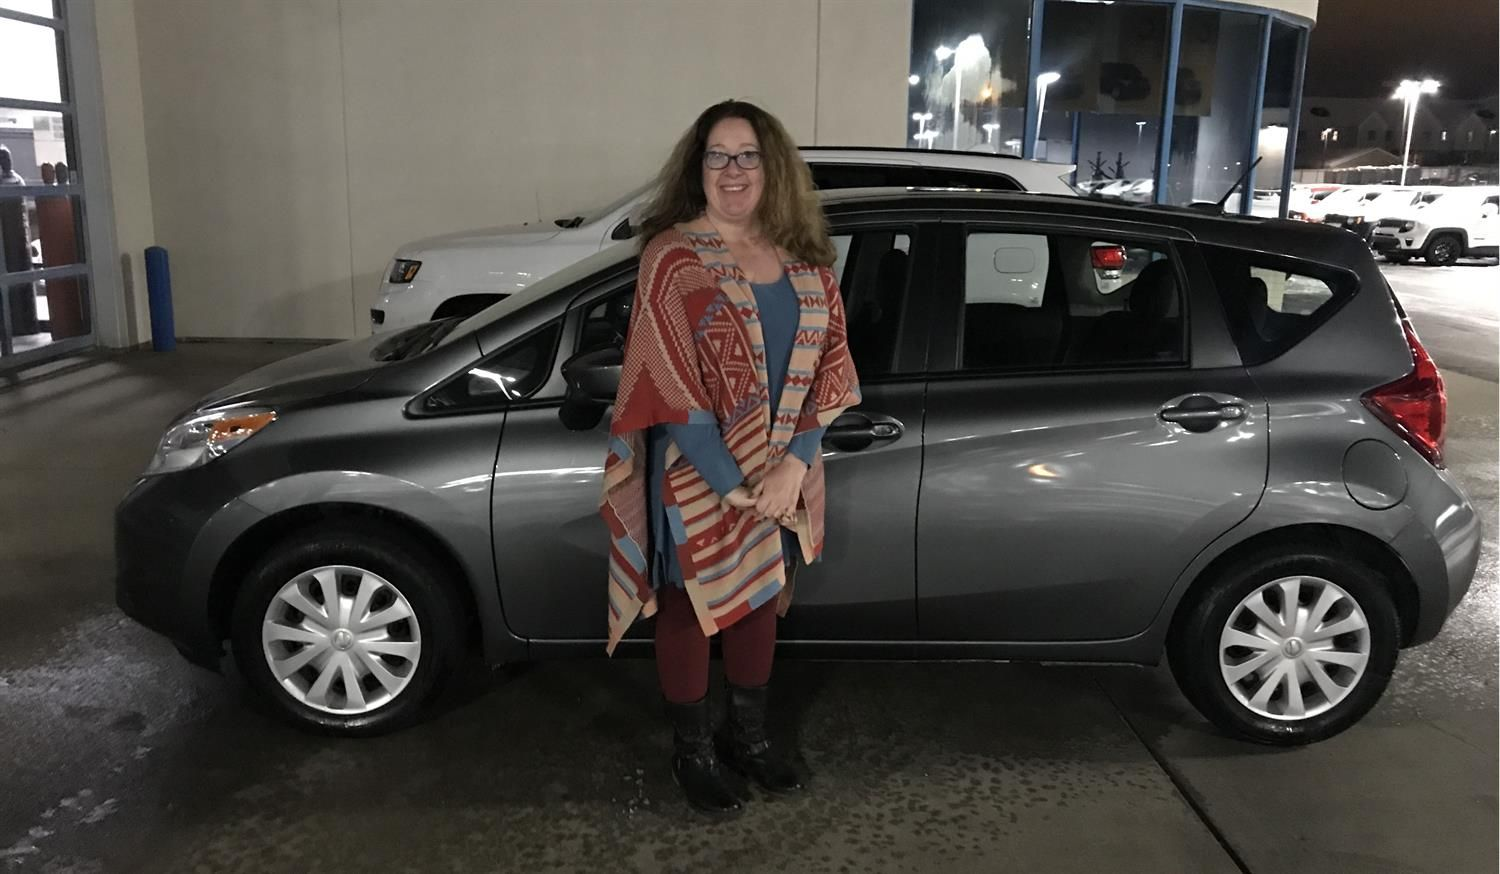 Jalene Are You Ready To Start A New Adventure With Your New 2016 Nissan Versa Note Wishing You Many Miles Of Smiles From All Of Us Here At Landmark Chrysler In 2020